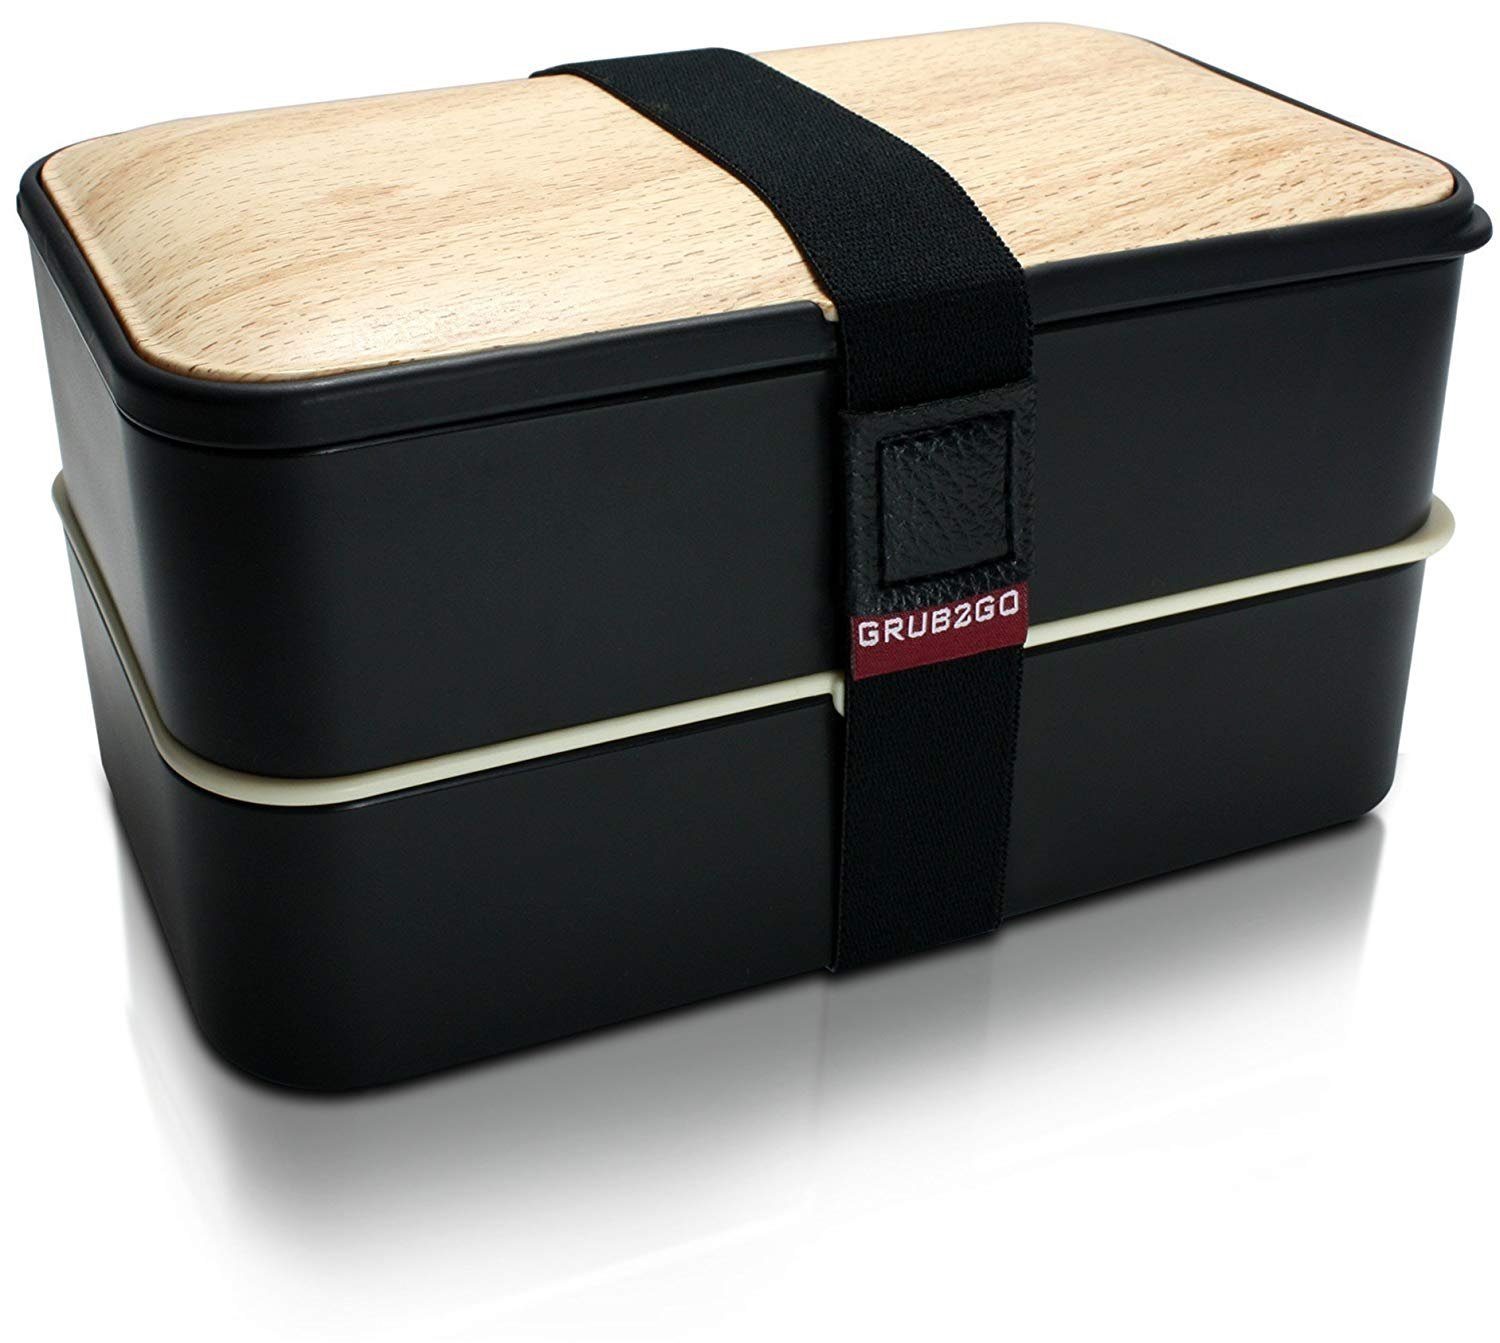 Japanese Traditional Bento Box by GRUB2GO w/FREE Bento Food Ideas Guide + Utensils - Leakproof Lunch Container - Black/Wood